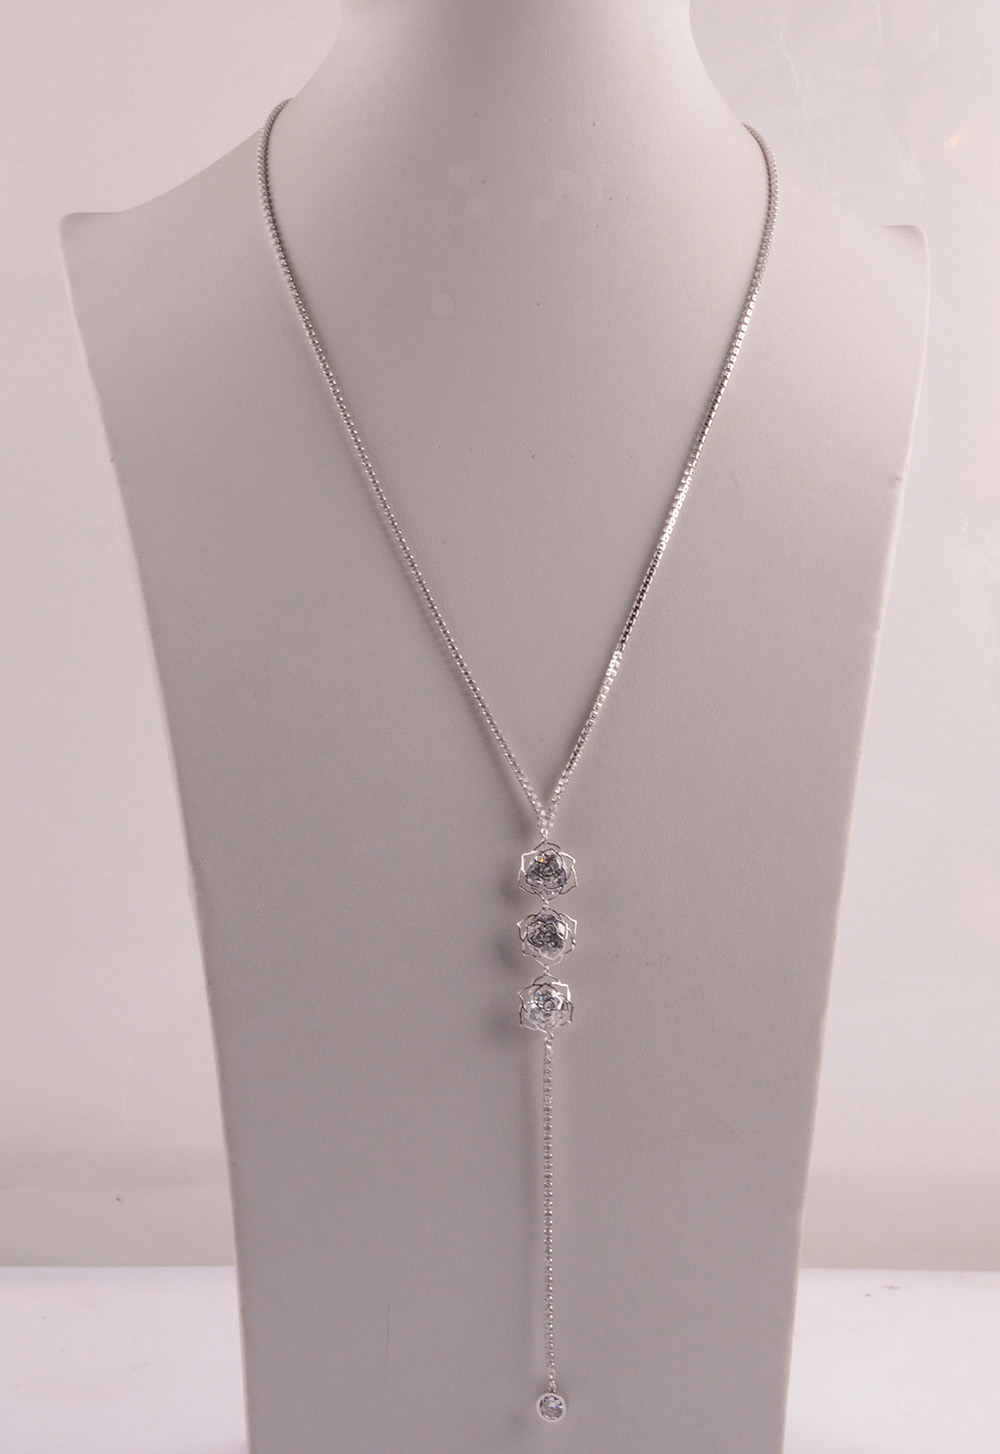 907538 Lady Long Necklace